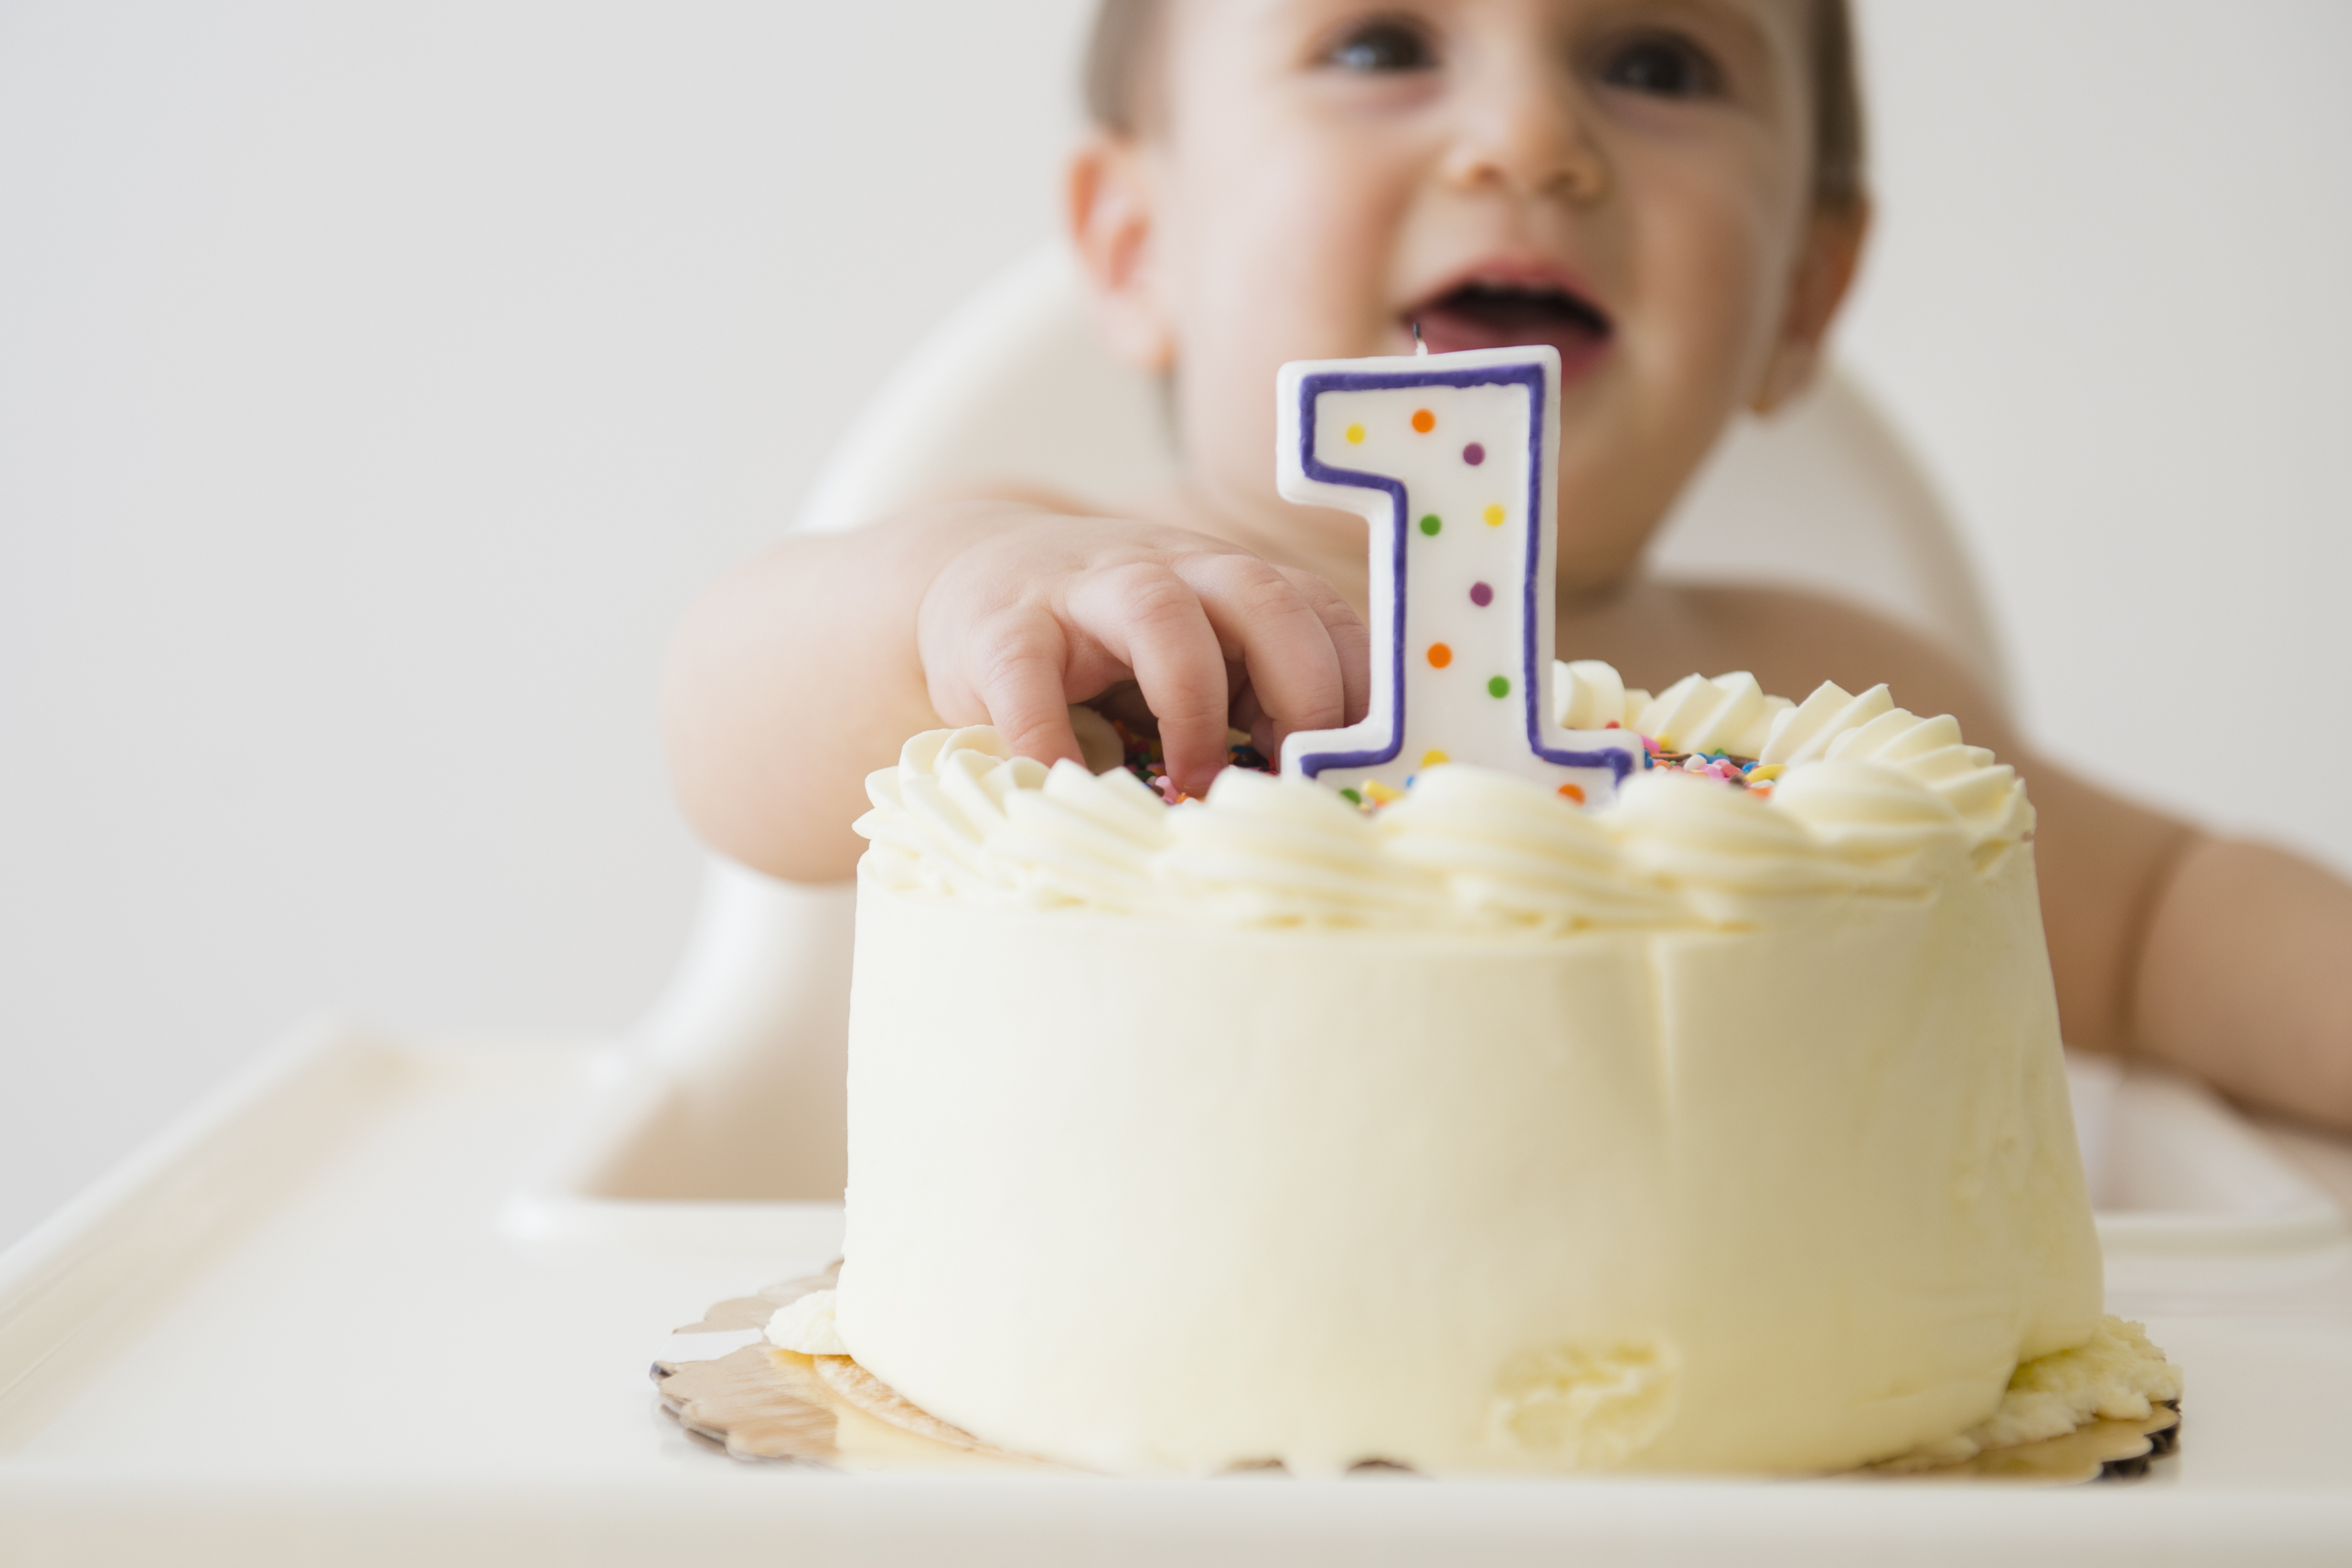 Best 1st Birthday Gift Ideas 2021 From Party Decorations To The Best Presents For Baby